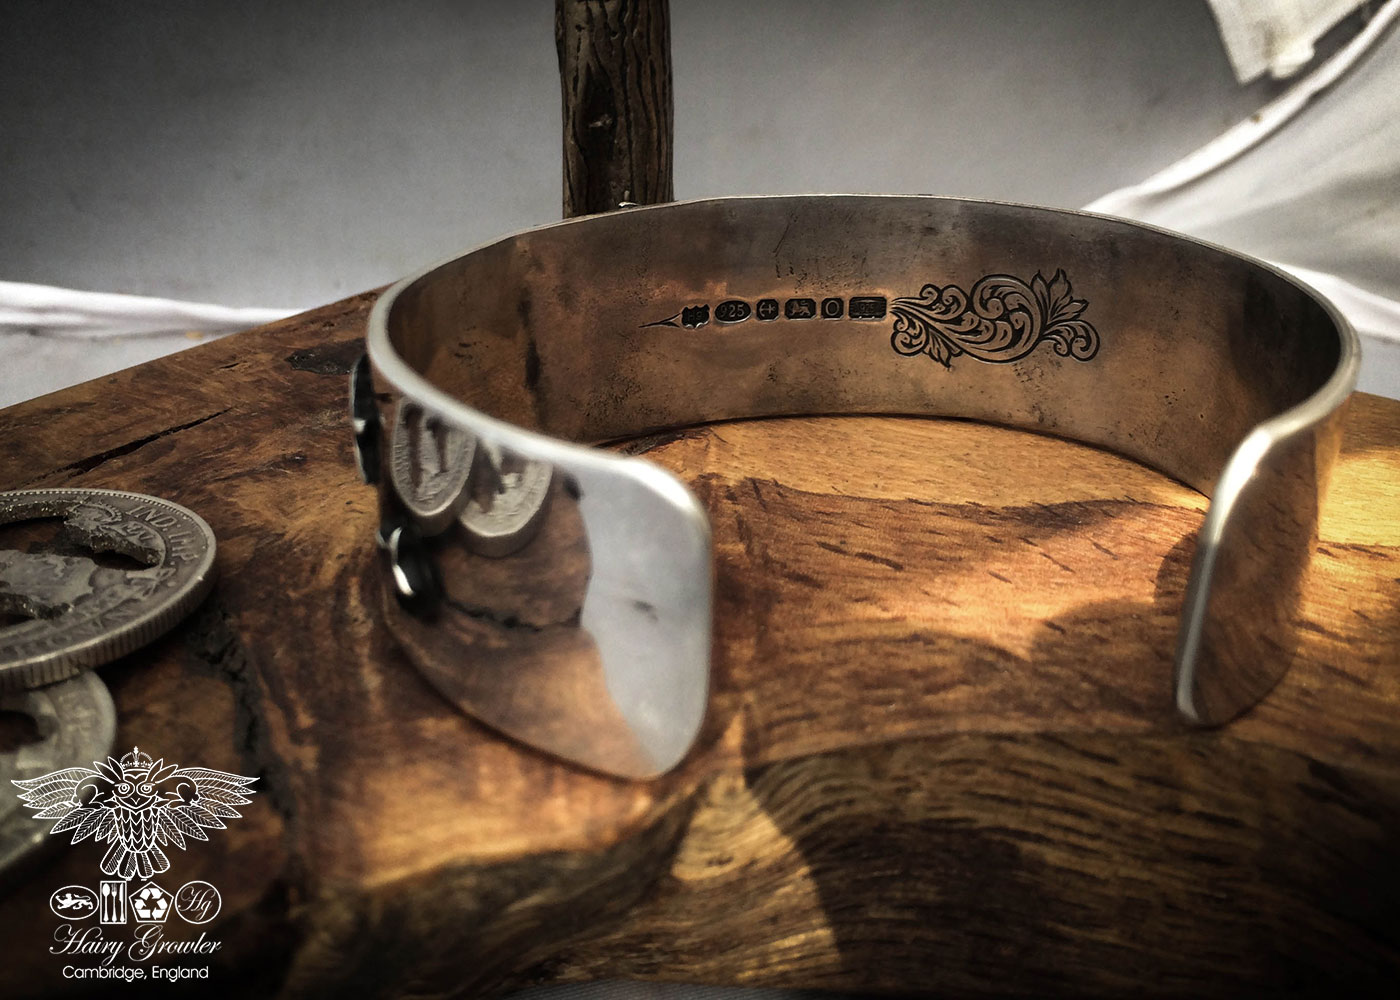 Handmade and upcycled silver kuff bracelet leaping and dashing hares